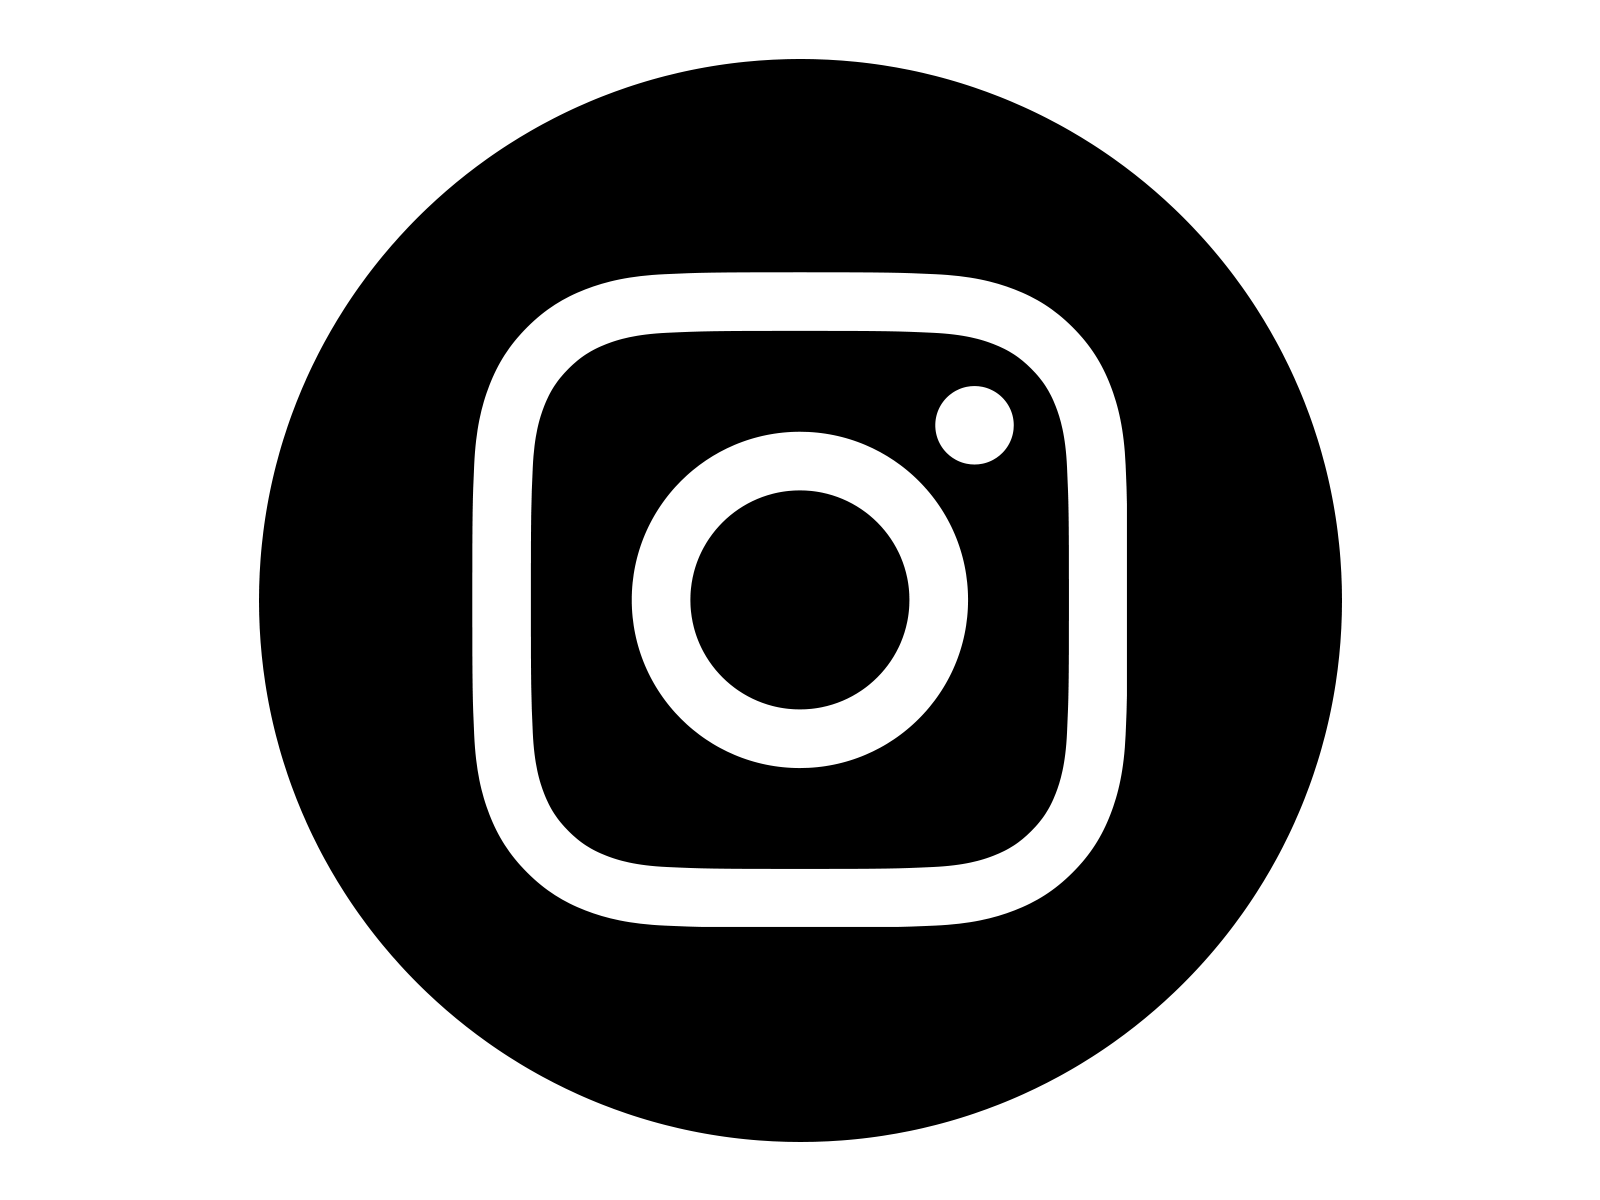 Instagram Icon White on Black Circle - Instagram Logo Eps PNG